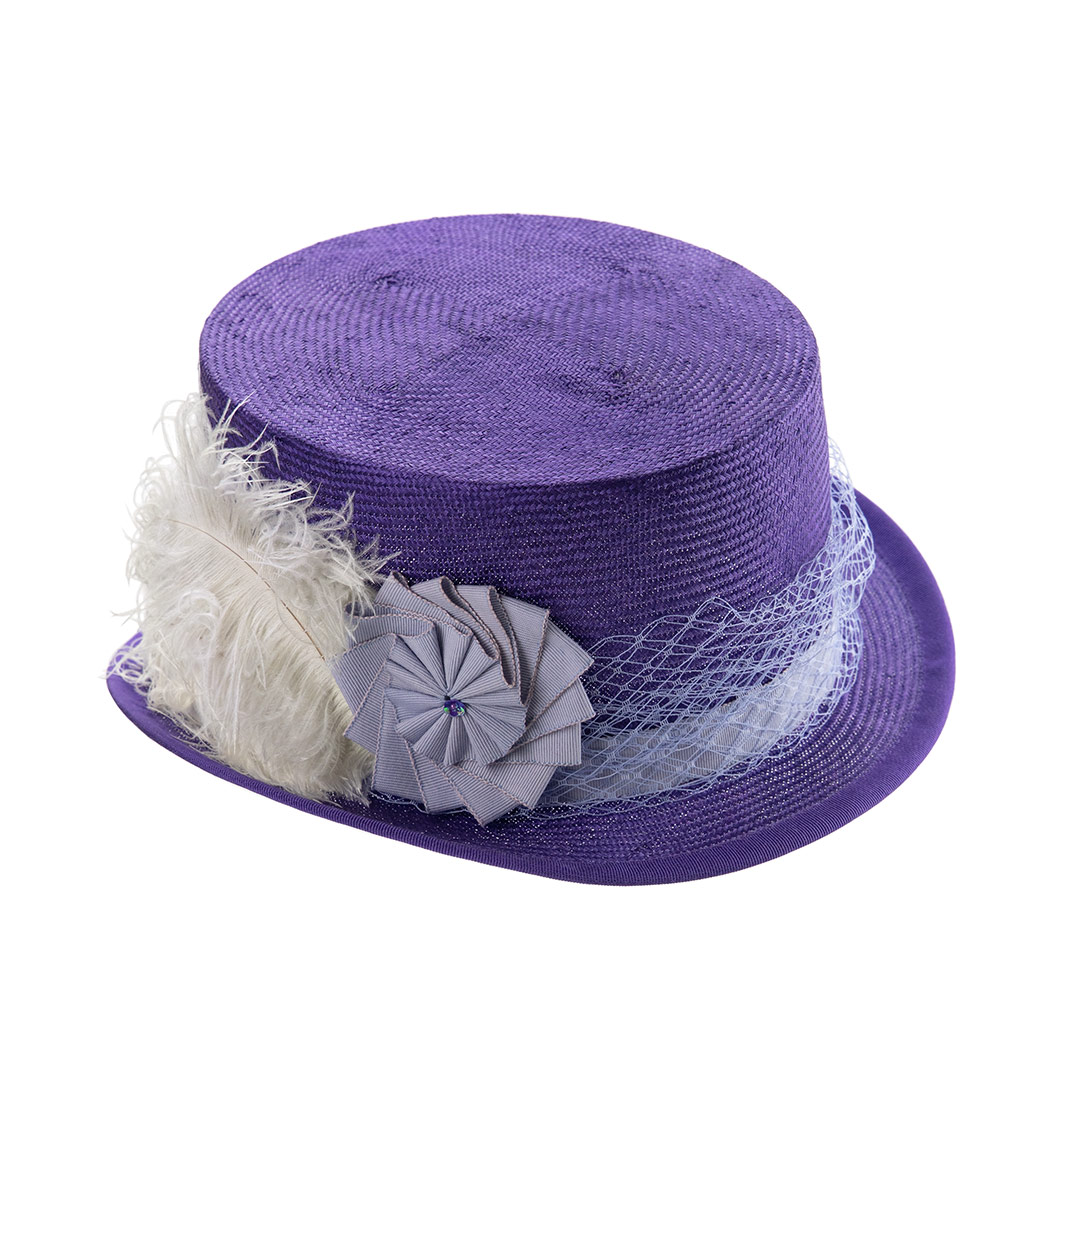 Purple straw top hat with cockade, veiling and ostrich feathers.